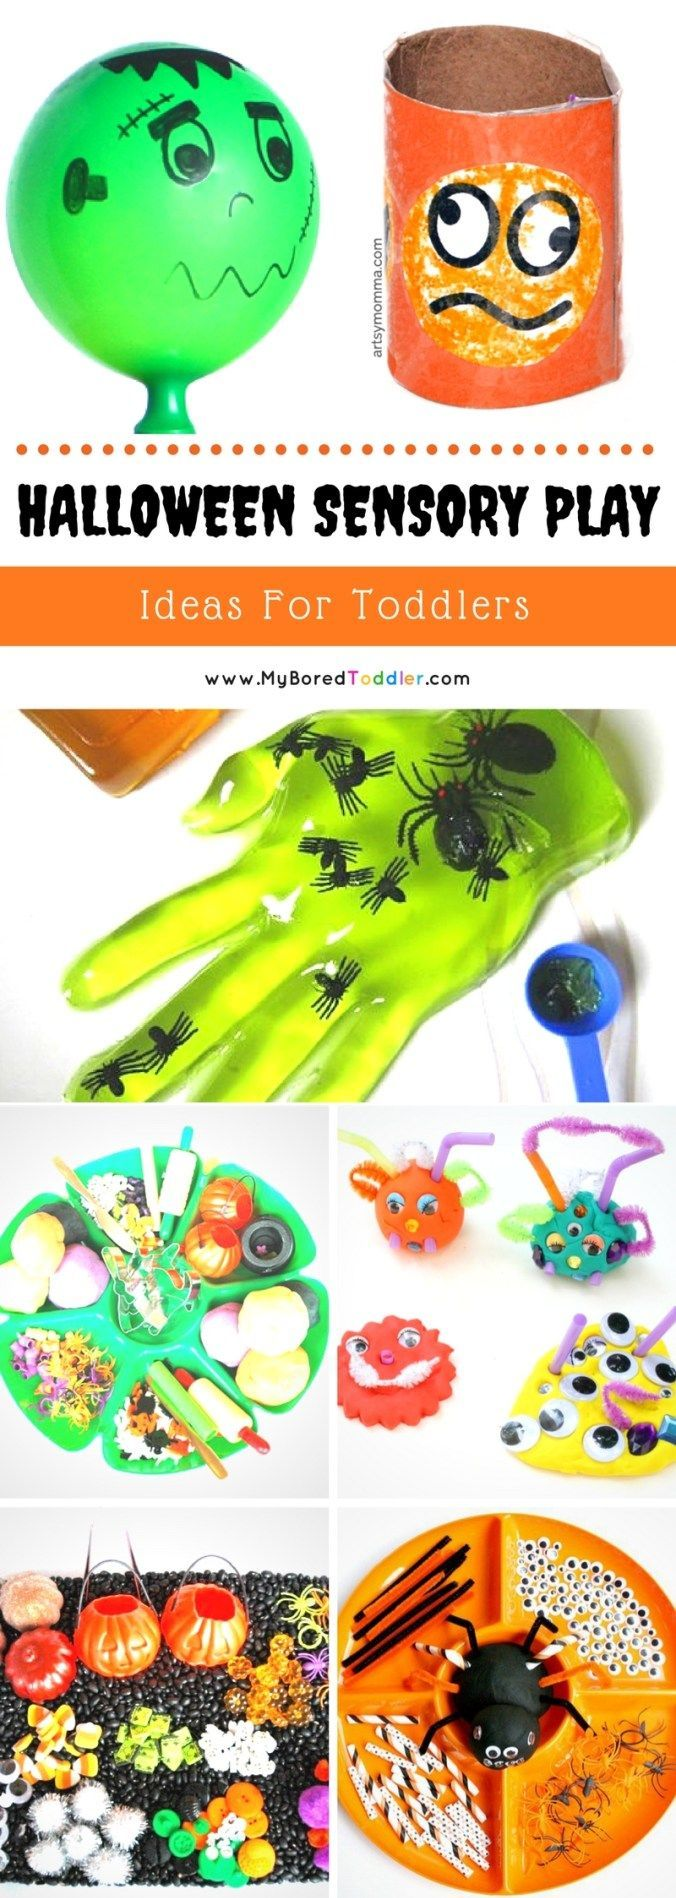 Halloween Sensory Play Ideas for Toddlers, #Halloween #Ideas #Play #Sensory #Toddlers